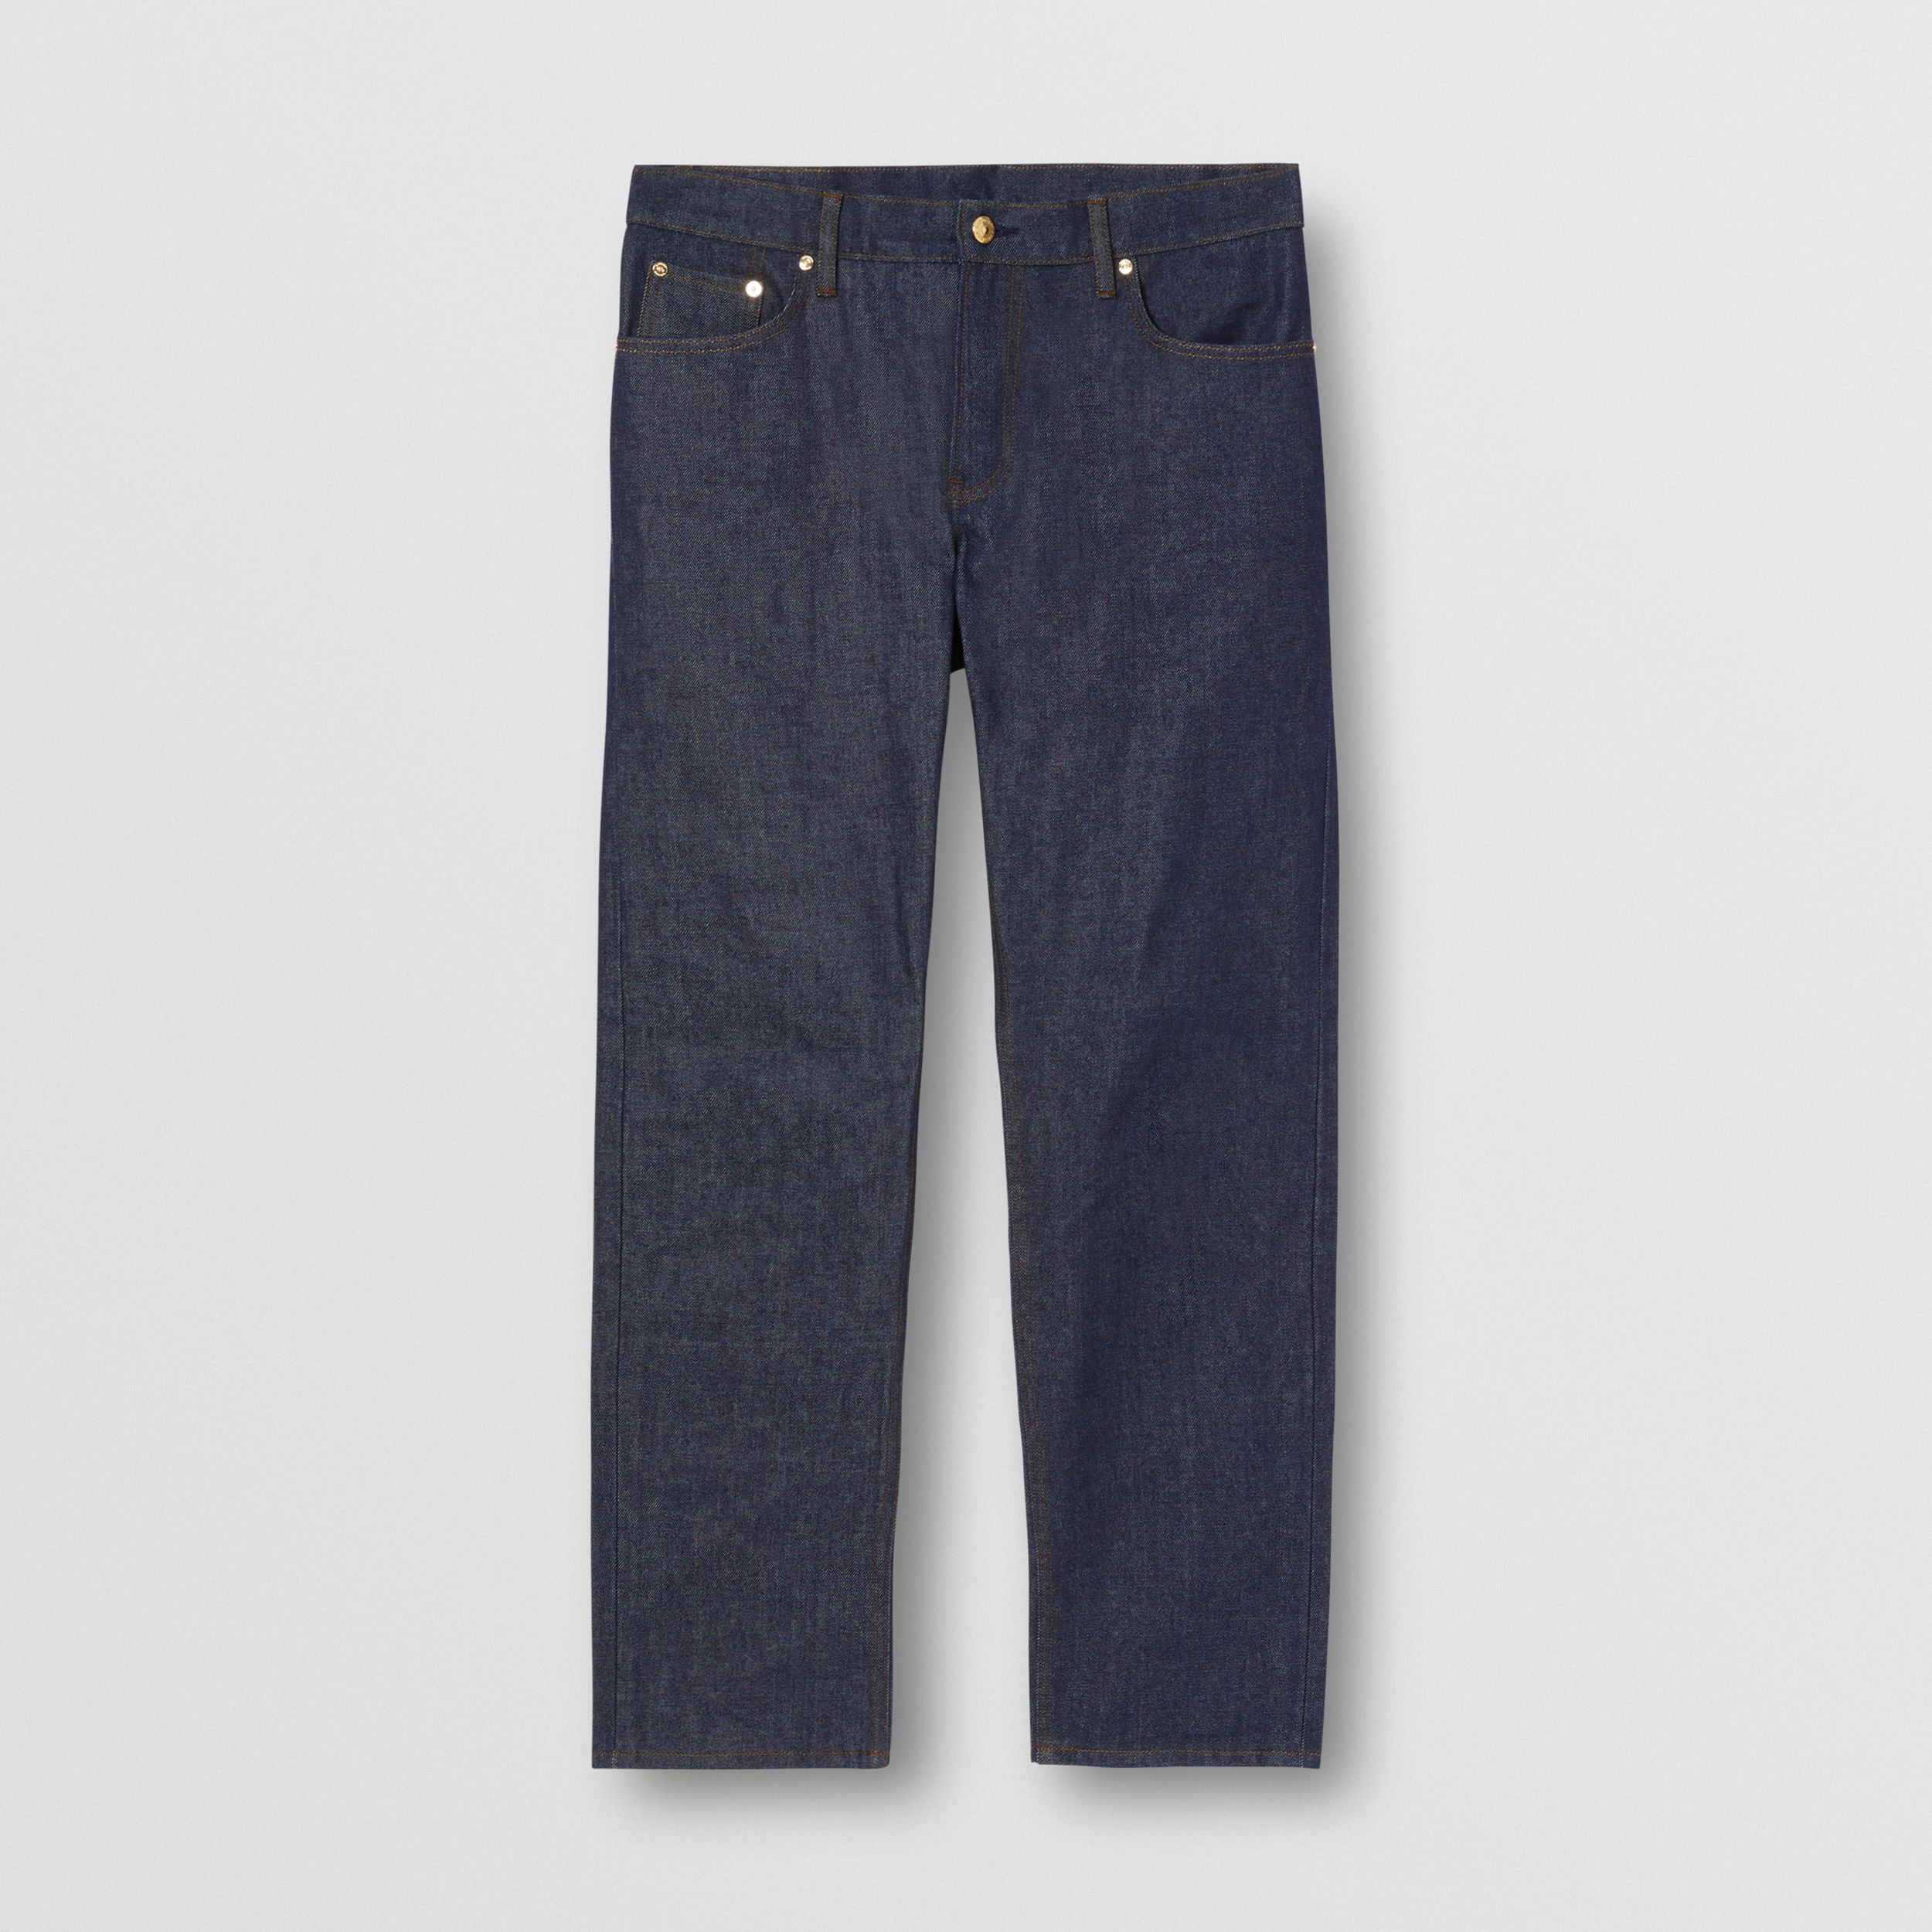 Straight Fit Raw Denim Jeans in Indigo - Men | Burberry - 4